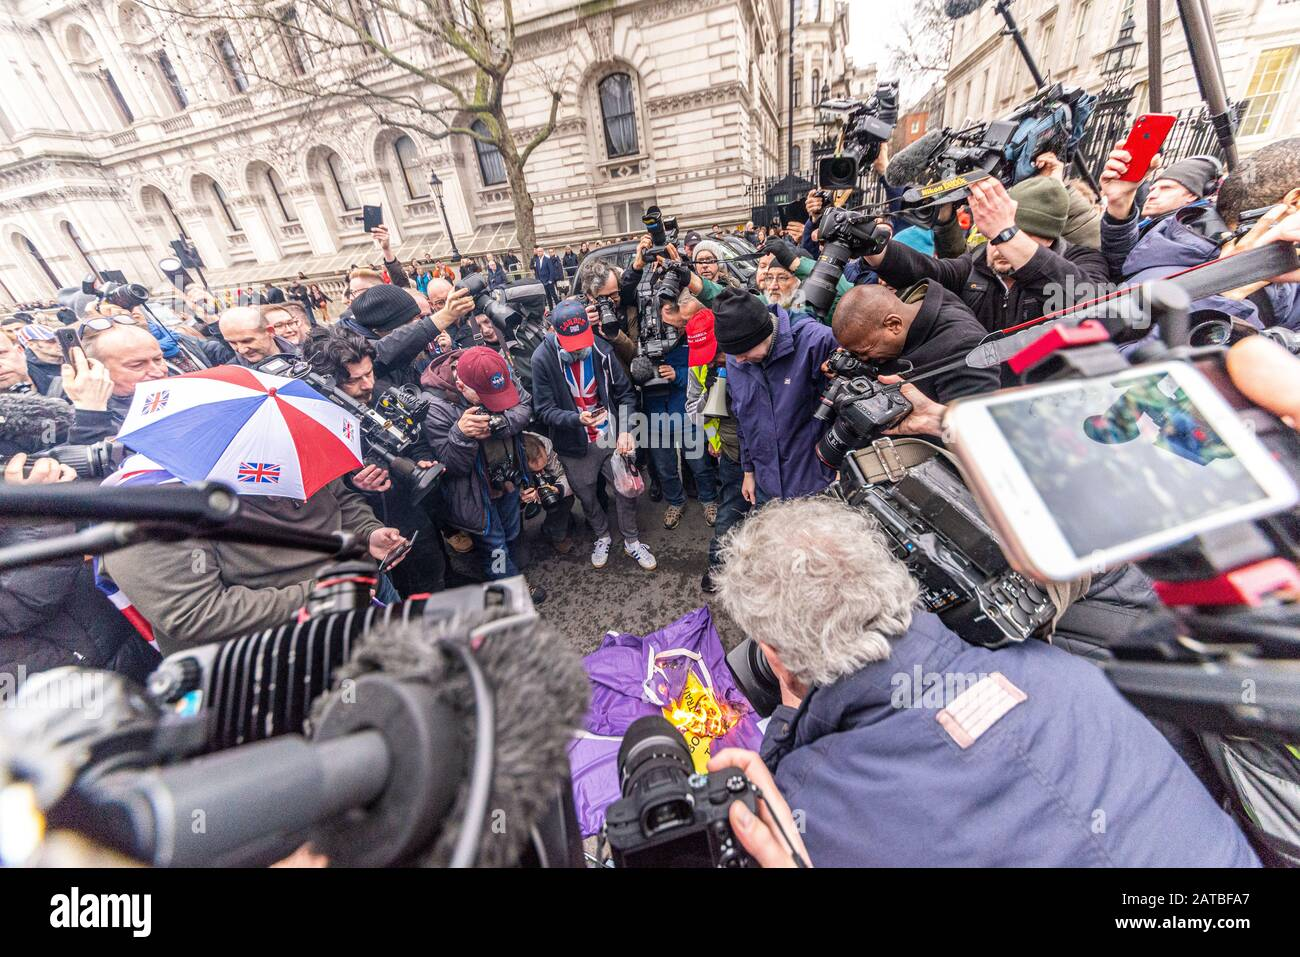 media-cameras-and-photographers-surrounding-an-attempt-to-burn-a-european-union-flag-on-brexit-day-31-january-2020-in-london-uk-press-crews-2ATBFA7.jpg